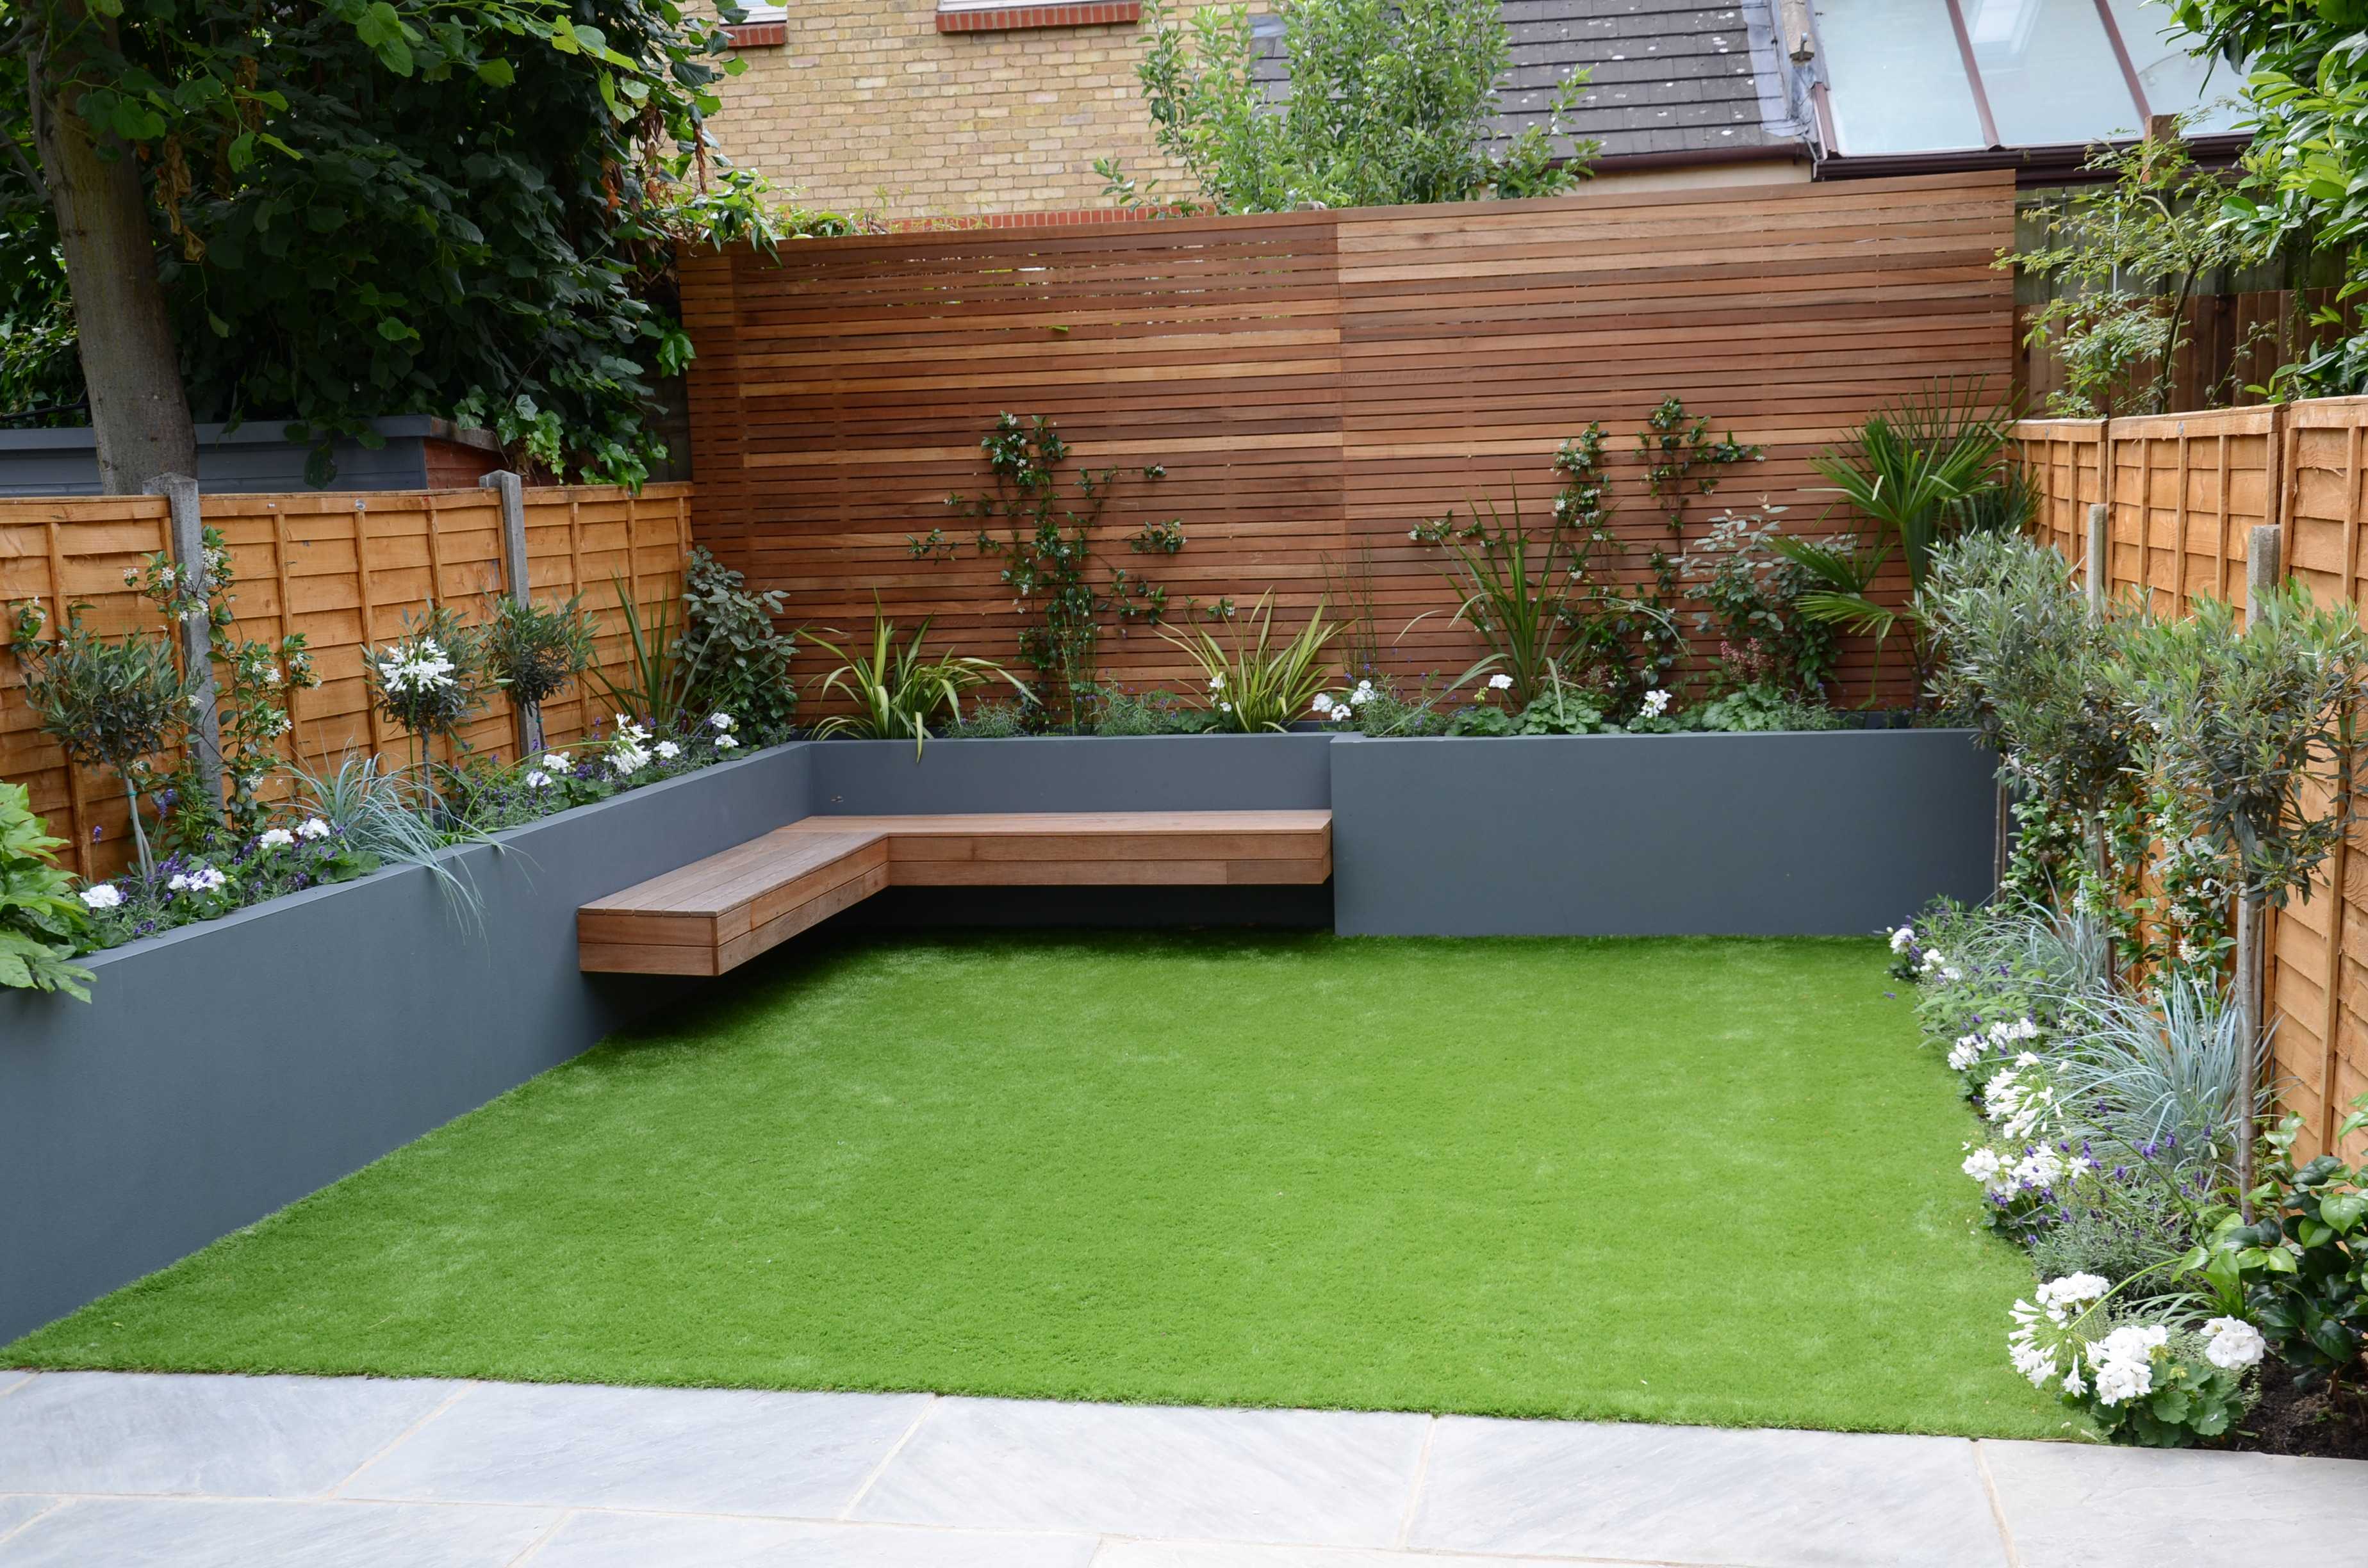 London garden blog london garden blog gardens from Small backyard designs pictures